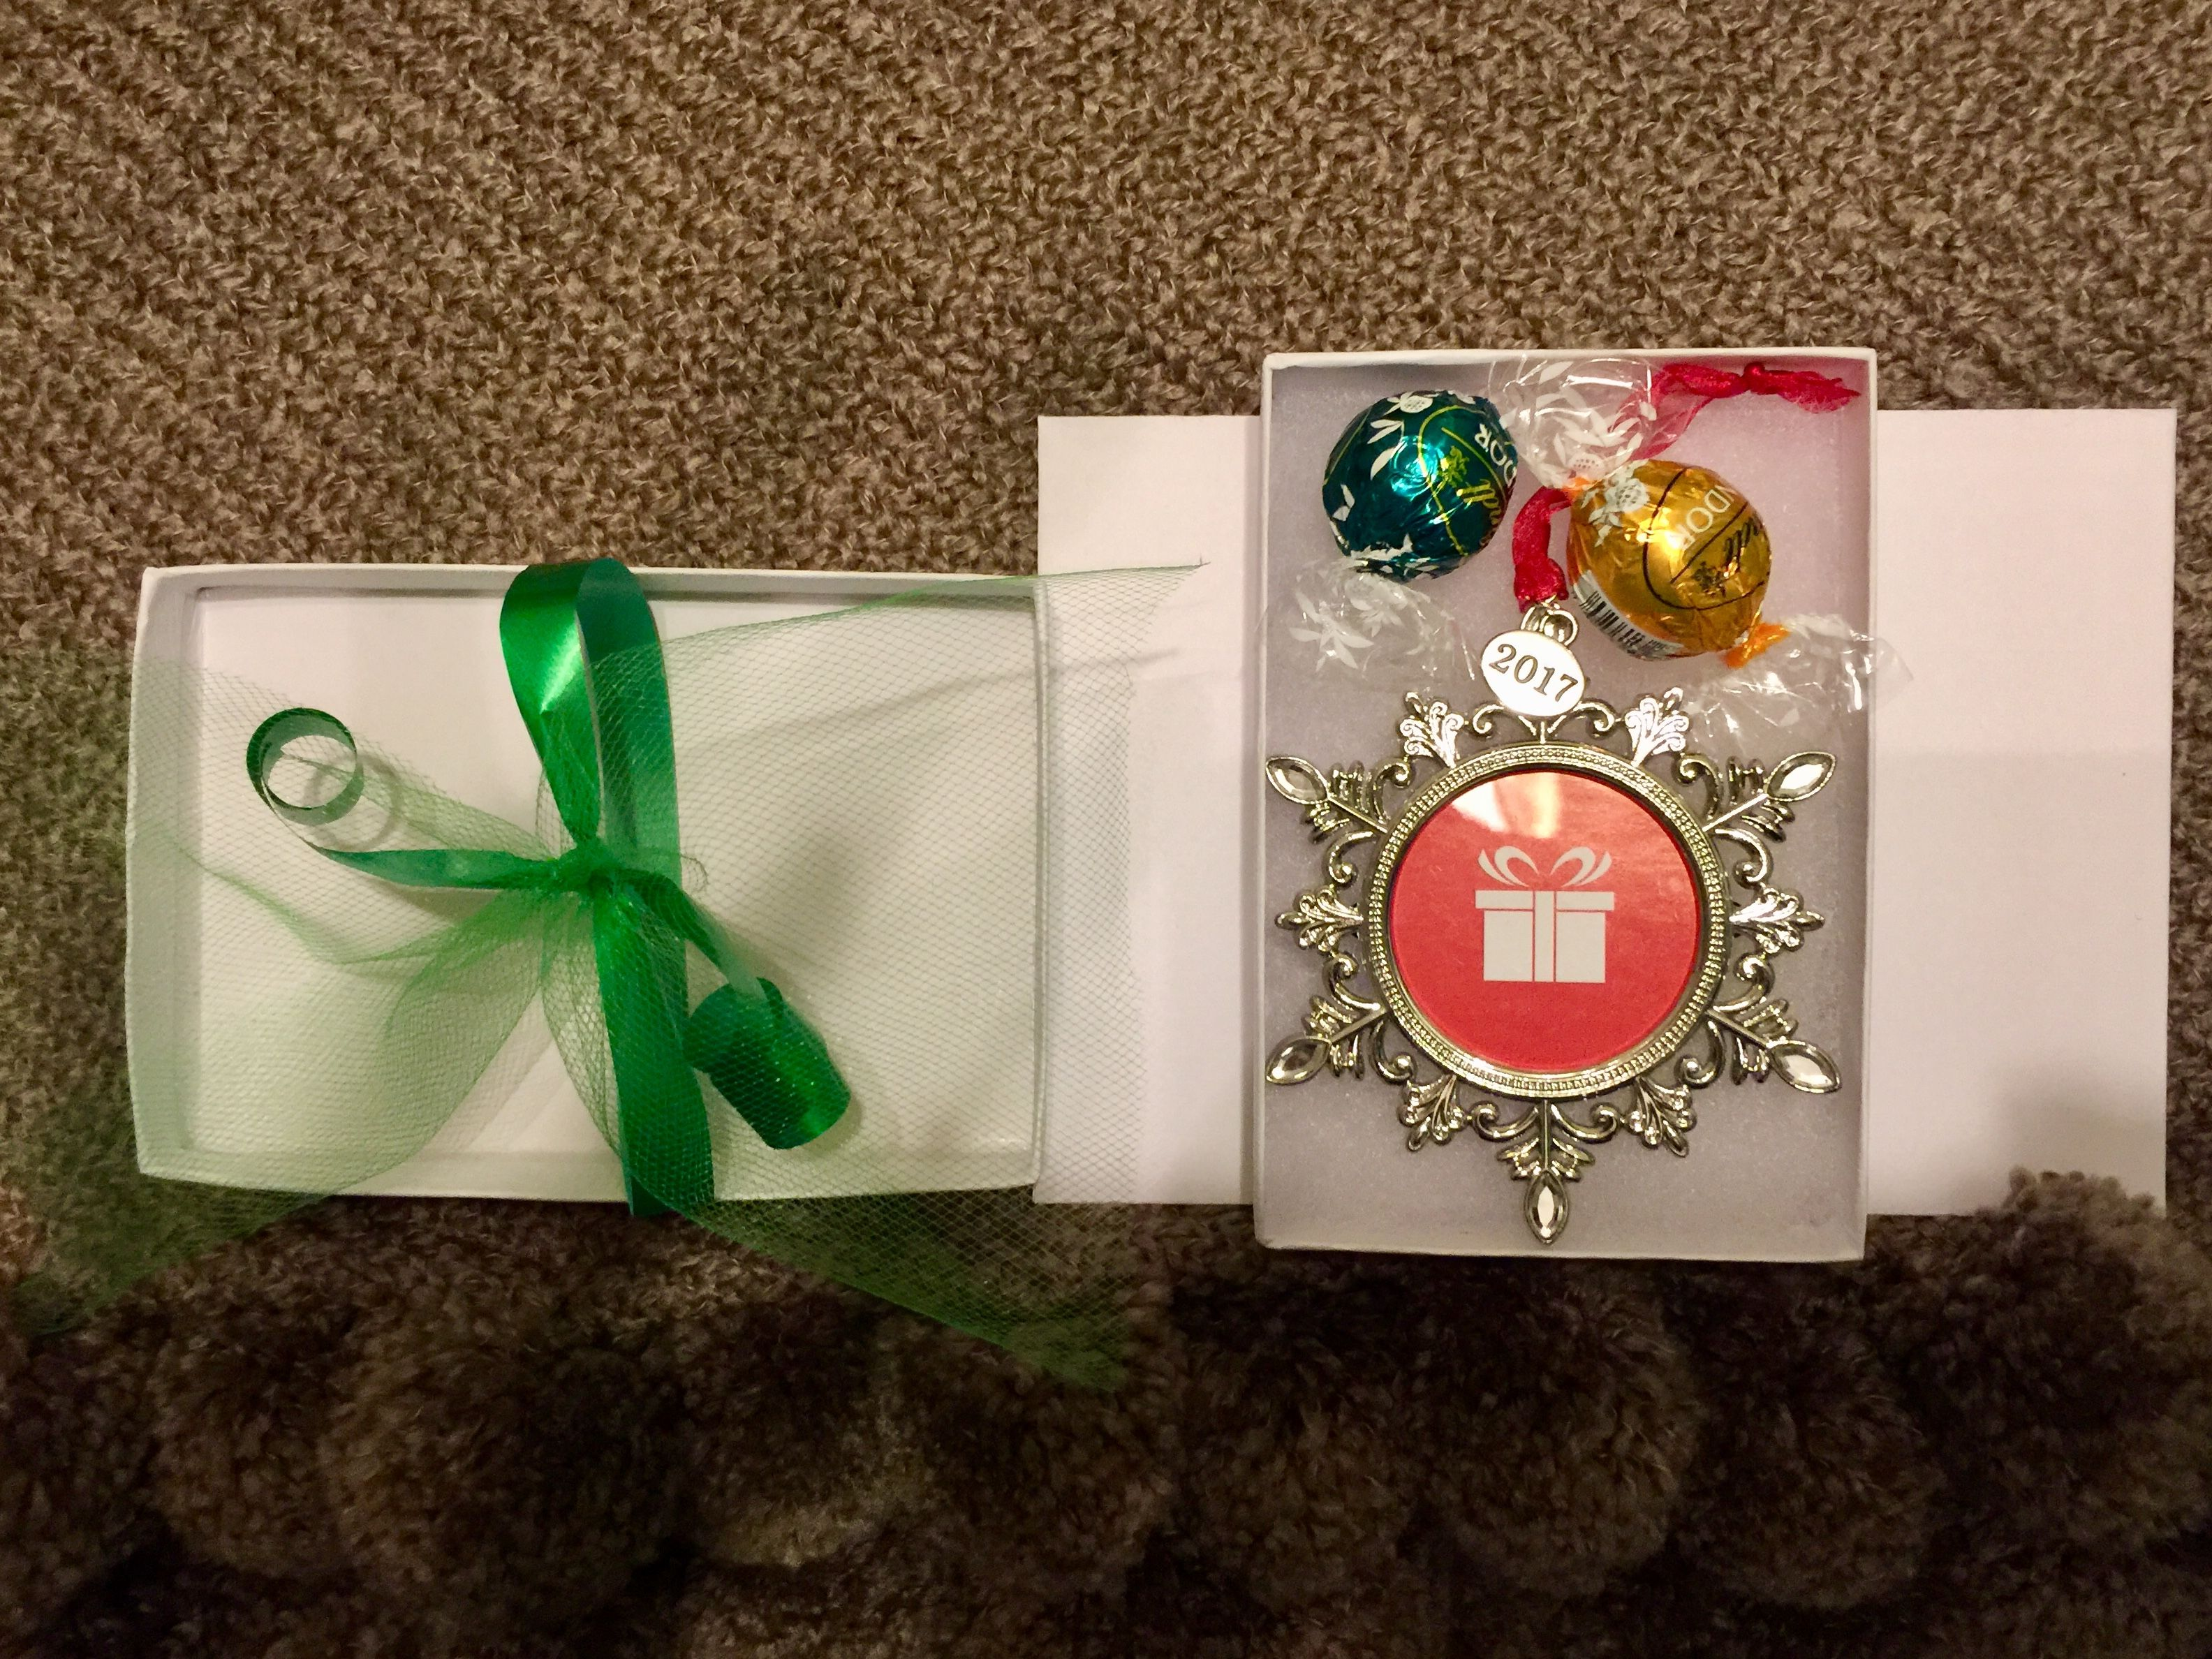 Christmas Gift Idea Ornament And Pieces Of Chocolate Candy Inside